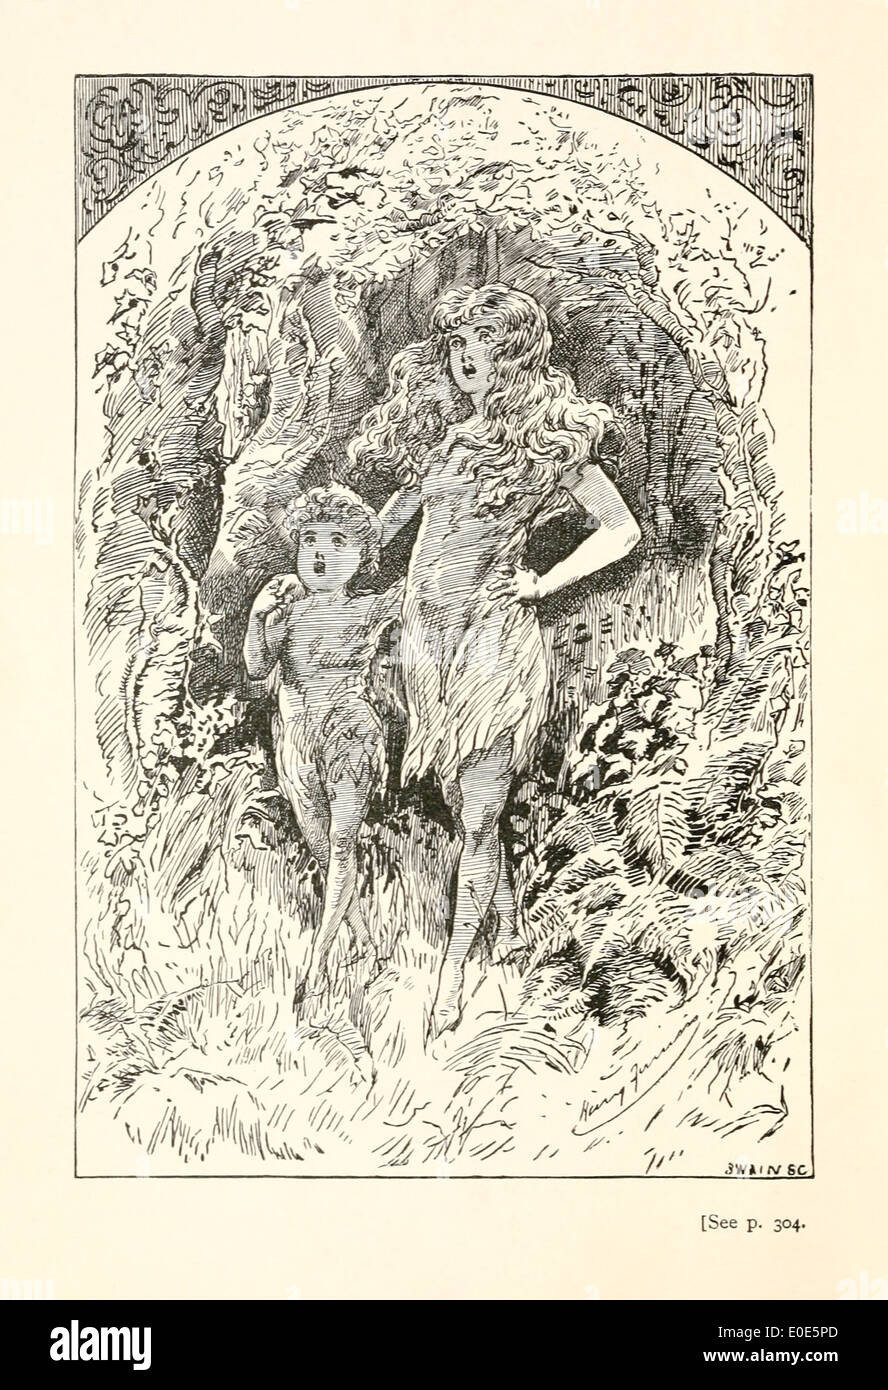 Harry Furniss (1854-1925) illustration from Lewis Carroll's 'Sylvie and Bruno Concluded' published in 1893. Frontispiece - Stock Image